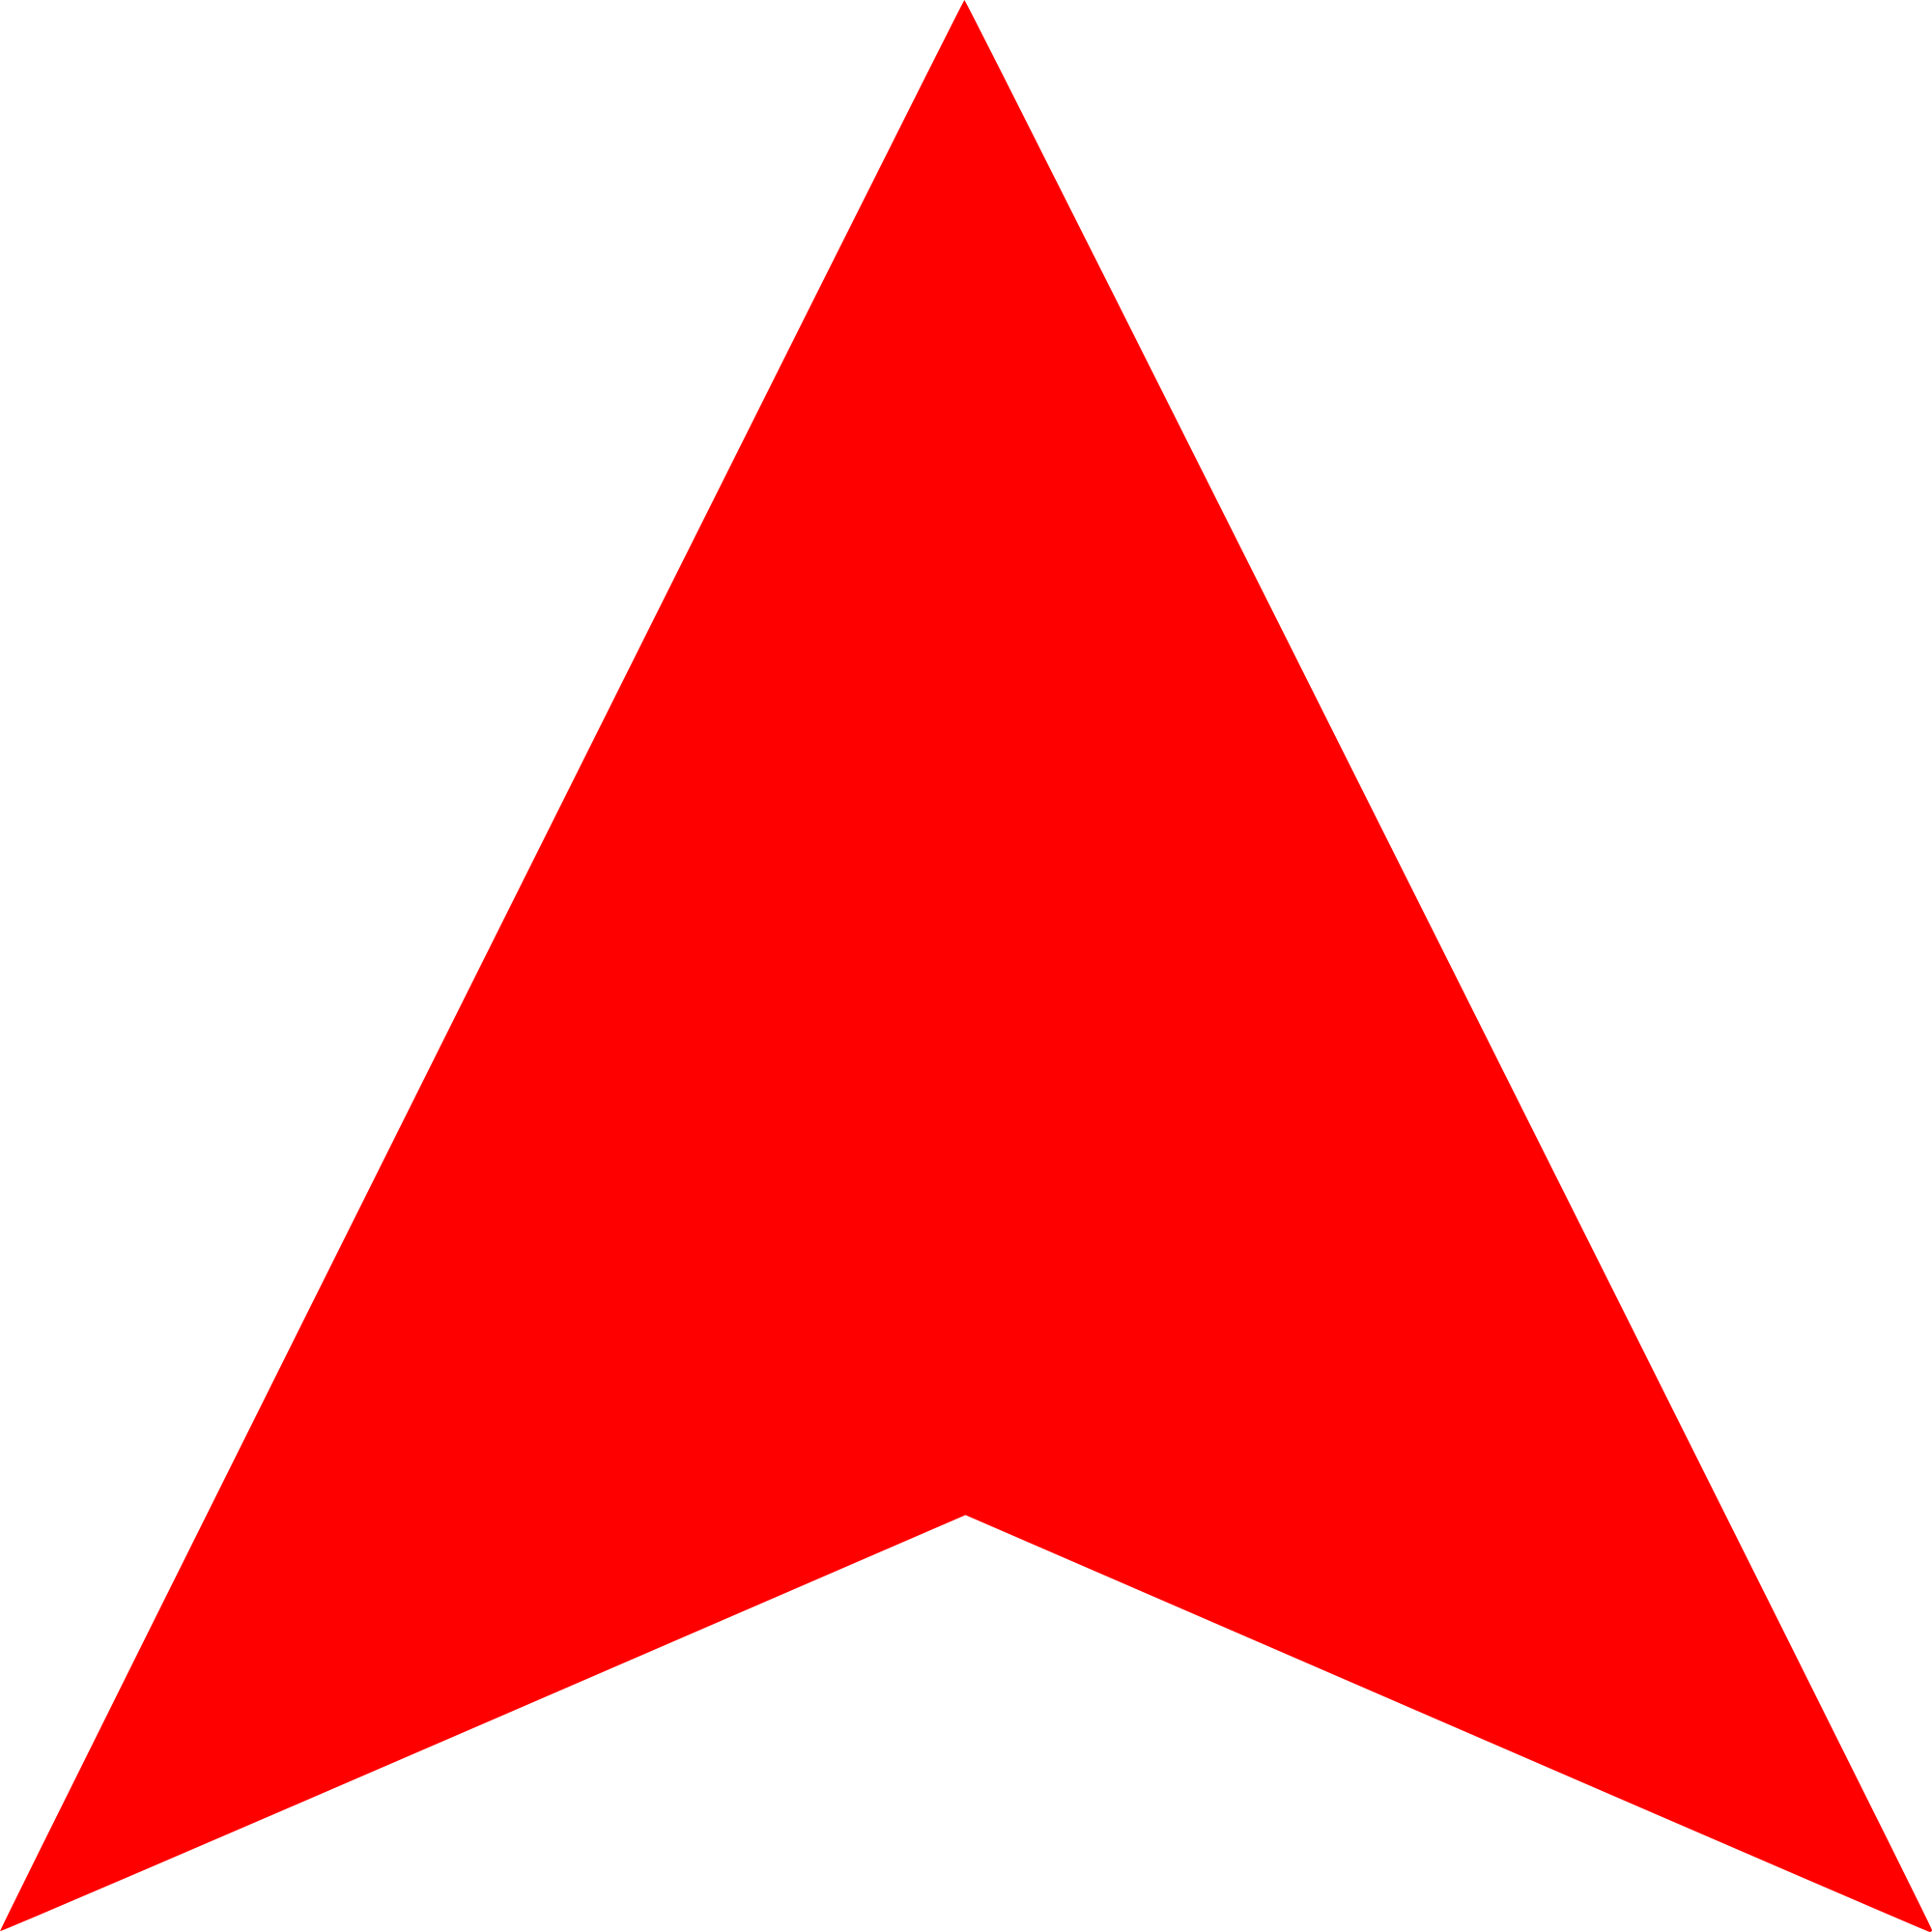 Red arrow image free download File:Red Arrow Up.svg - Wikimedia Commons free download